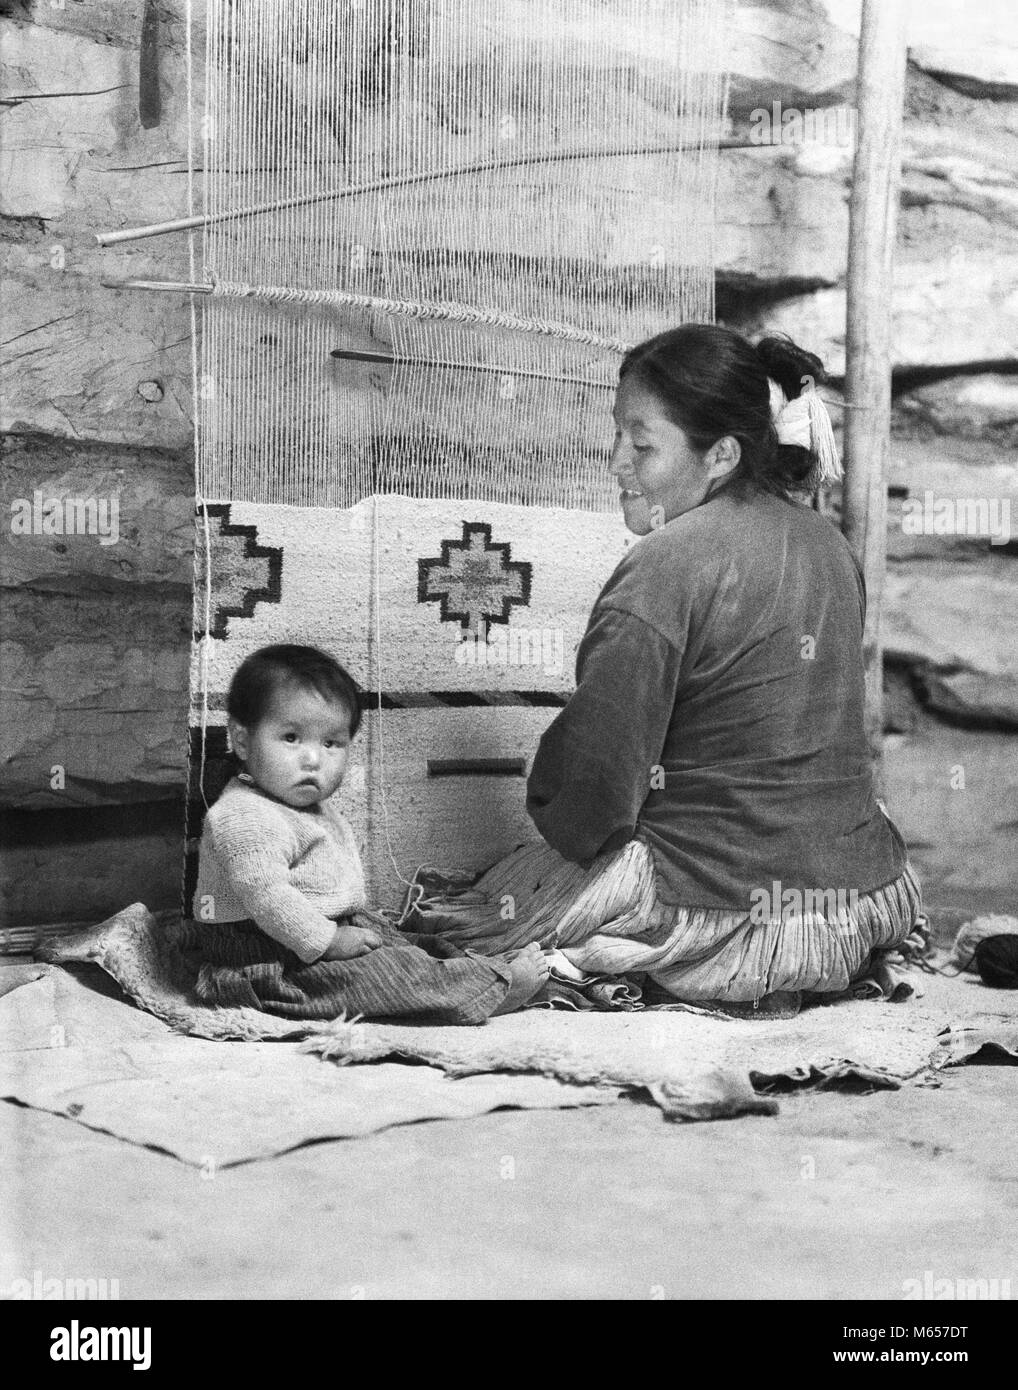 1930s SMILING NATIVE AMERICAN NAVAJO WOMAN MOTHER WEAVING RUG SEATED AT LOOM WITH BABY AT HER SIDE LOOKING AT CAMERA - Stock Image